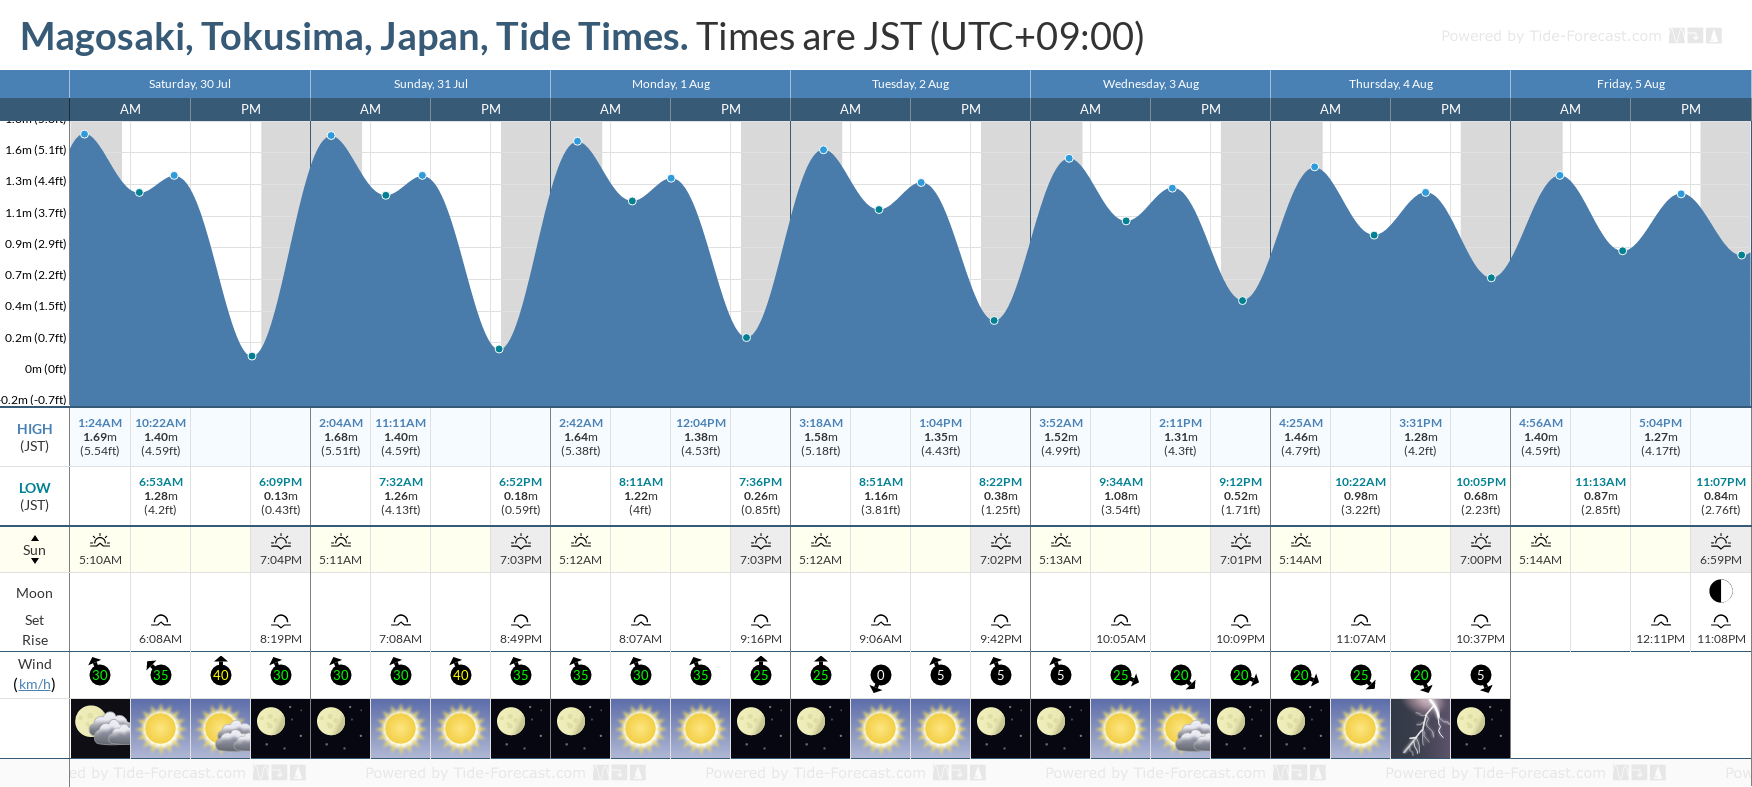 Magosaki, Tokusima, Japan Tide Chart including high and low tide tide times for the next 7 days